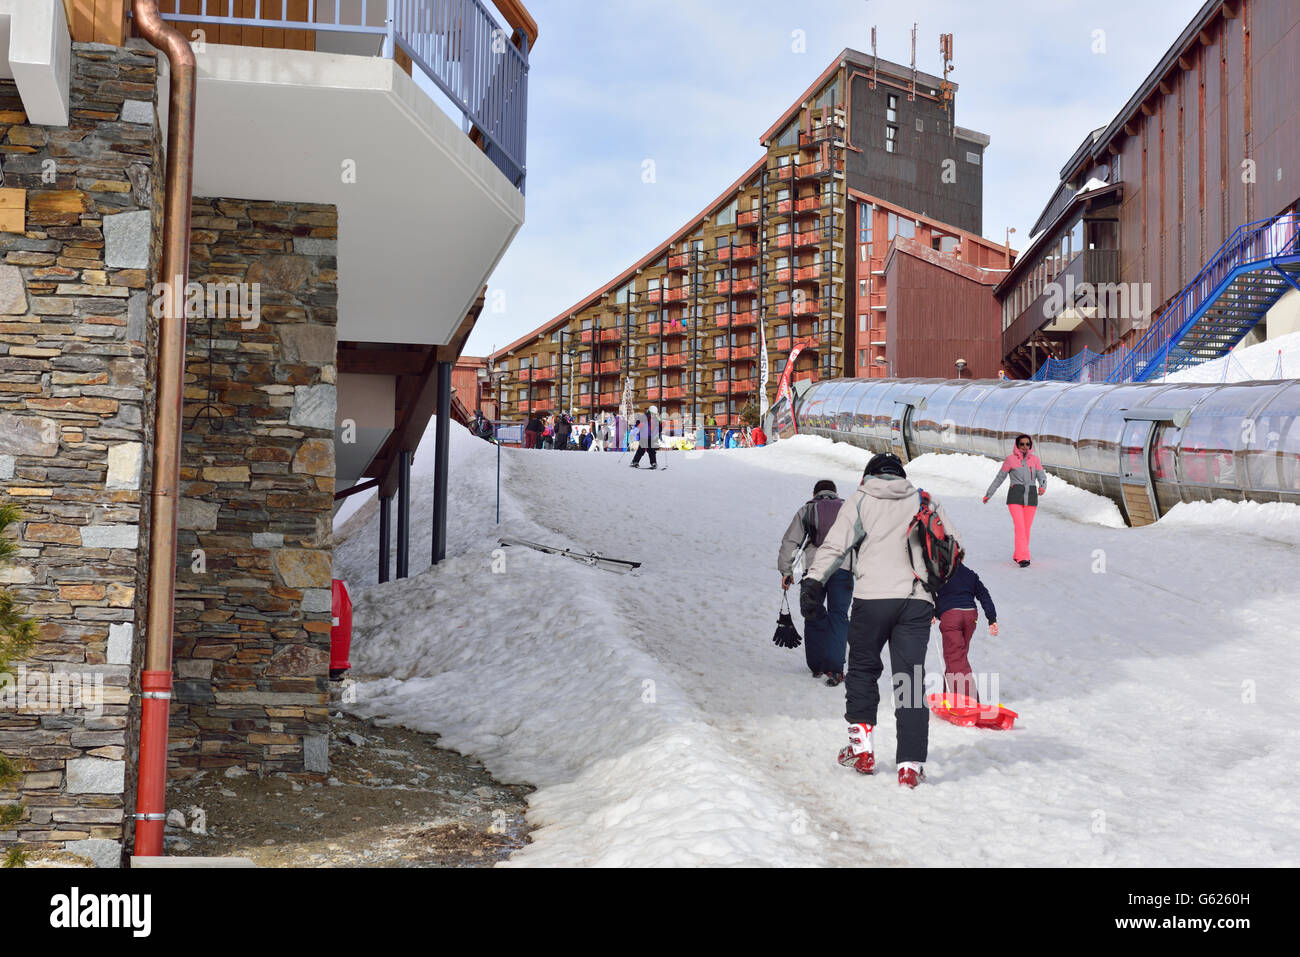 Ski resort novice slope, Paradiski, Arc2000, Rhône-Alpes, France - Stock Image